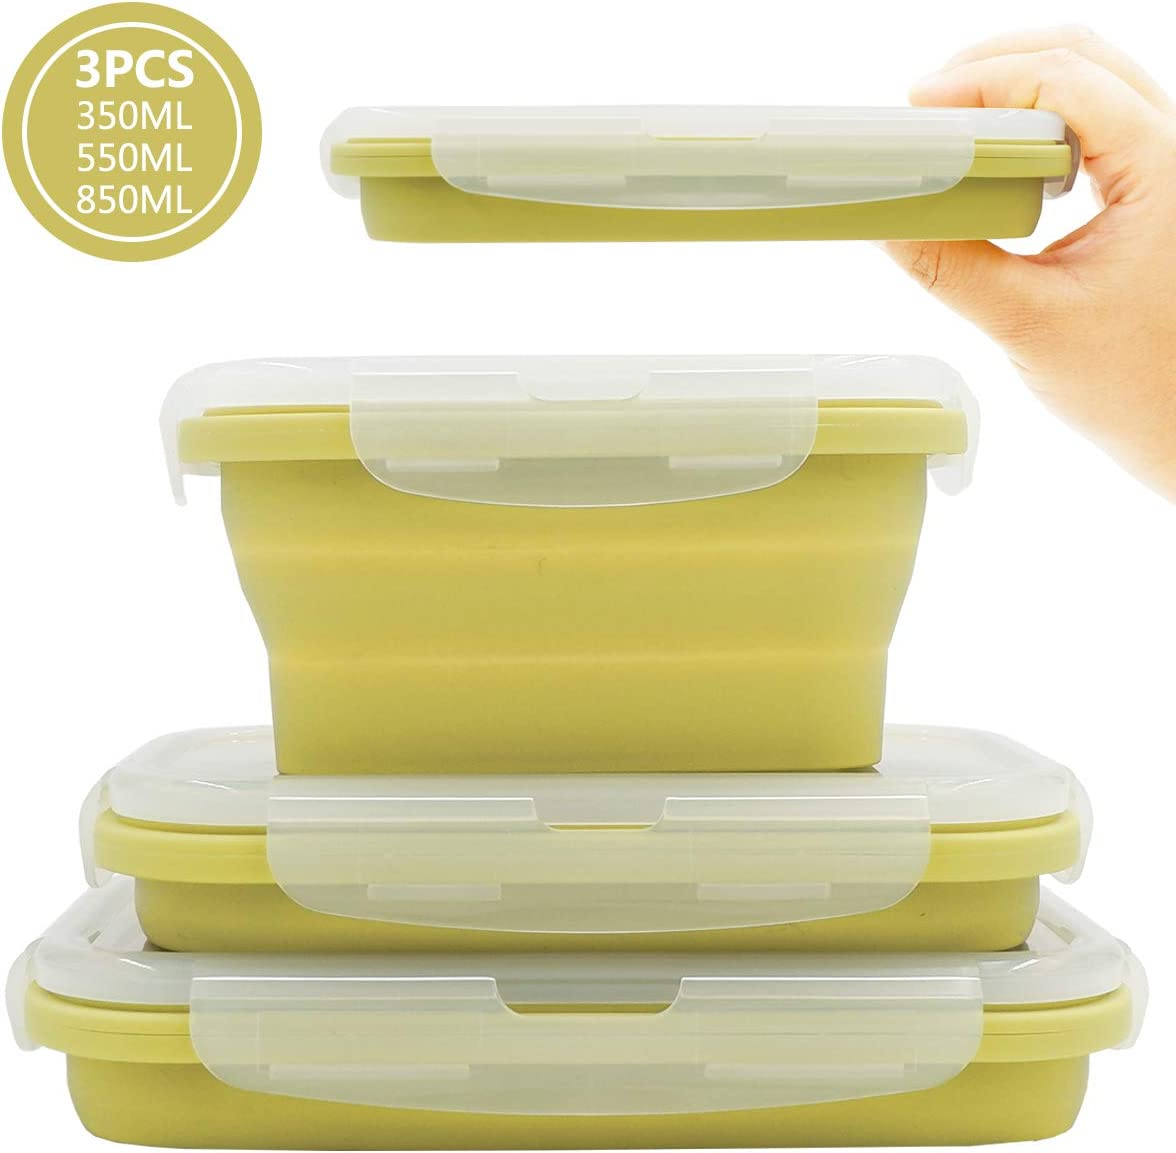 Duoyou Collapsible Silicone Lunch Bento Box, Portable Food Storage Container Outdoor Picnic Box Space Saving, Microwave, Dishwasher and Freezer Safe, 3 Pcs Set (Green)